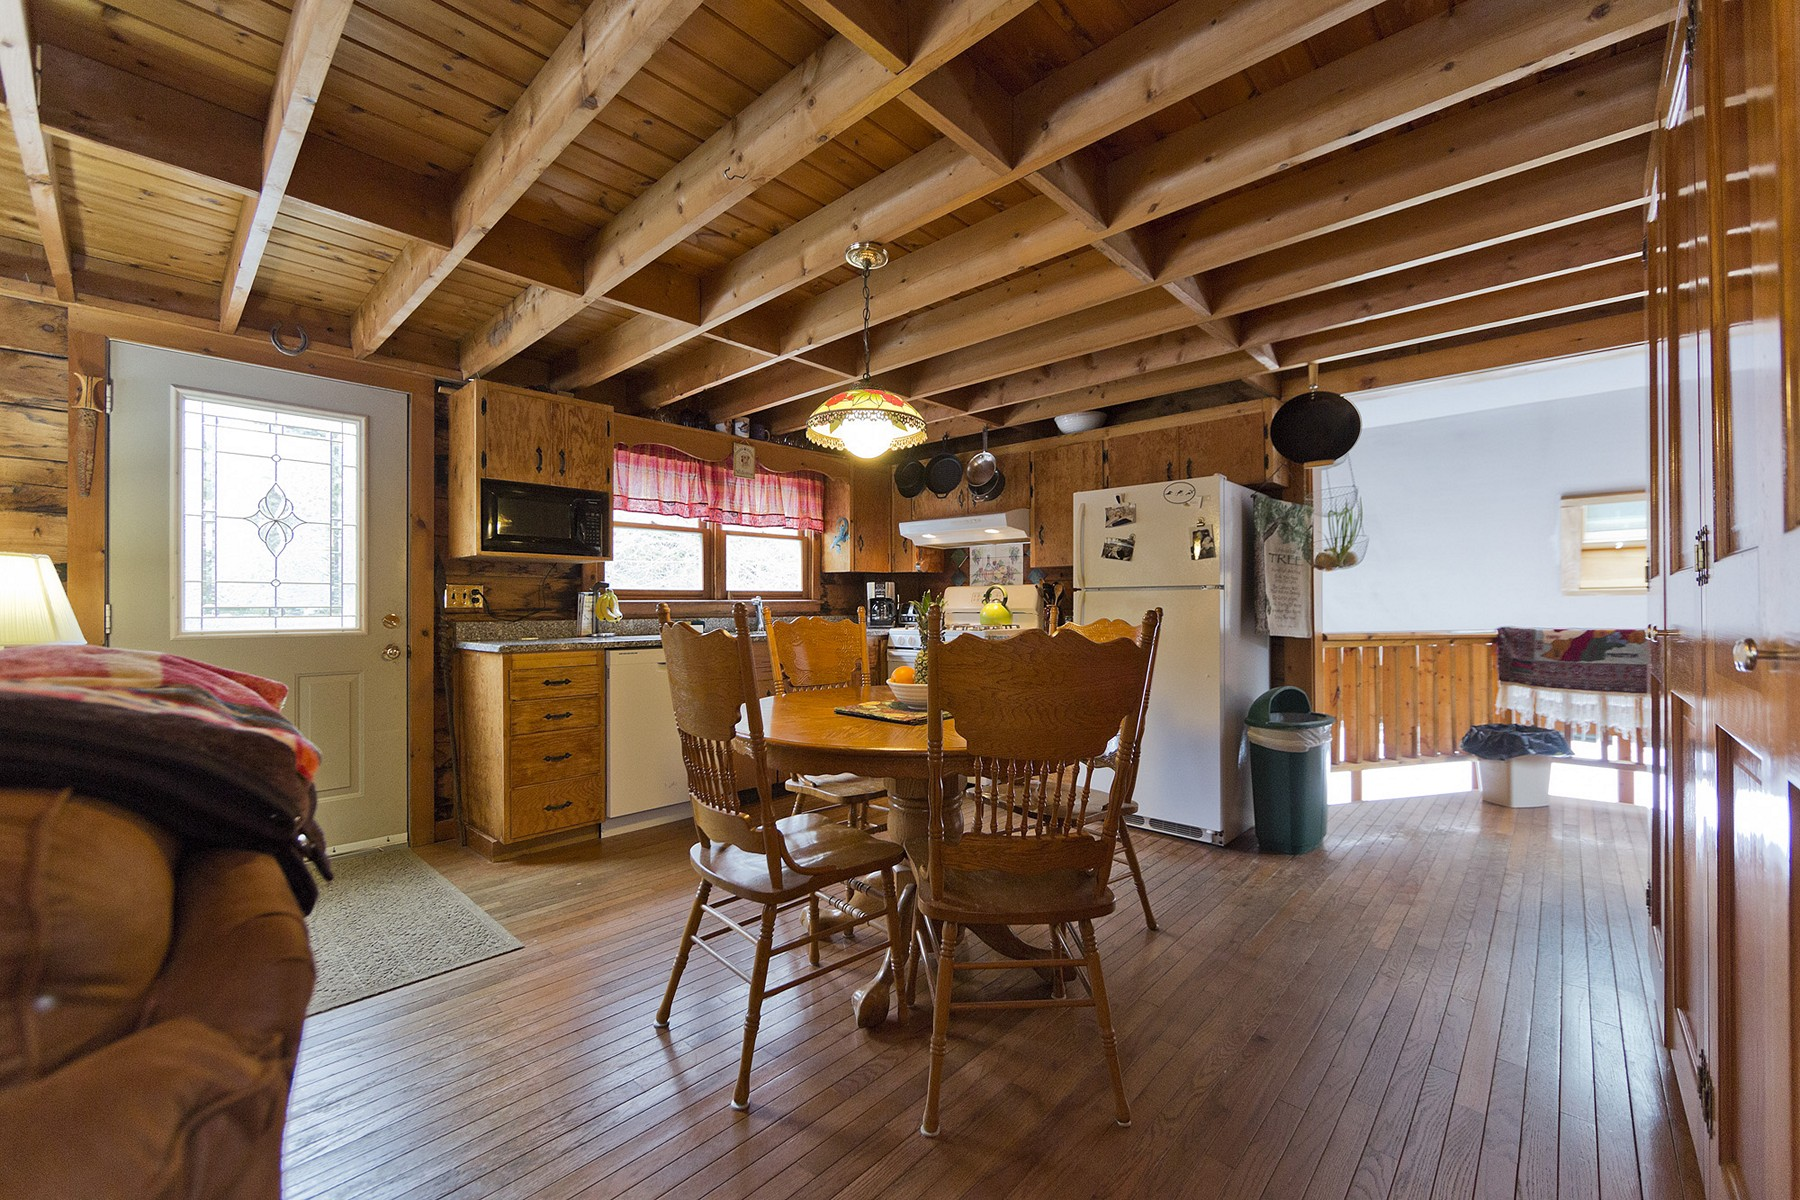 Maison unifamiliale pour l Vente à 19SomesRidgeRoadMountDesertMaine 19 Somes Ridge Road Mount Desert, Maine, 04660 États-Unis